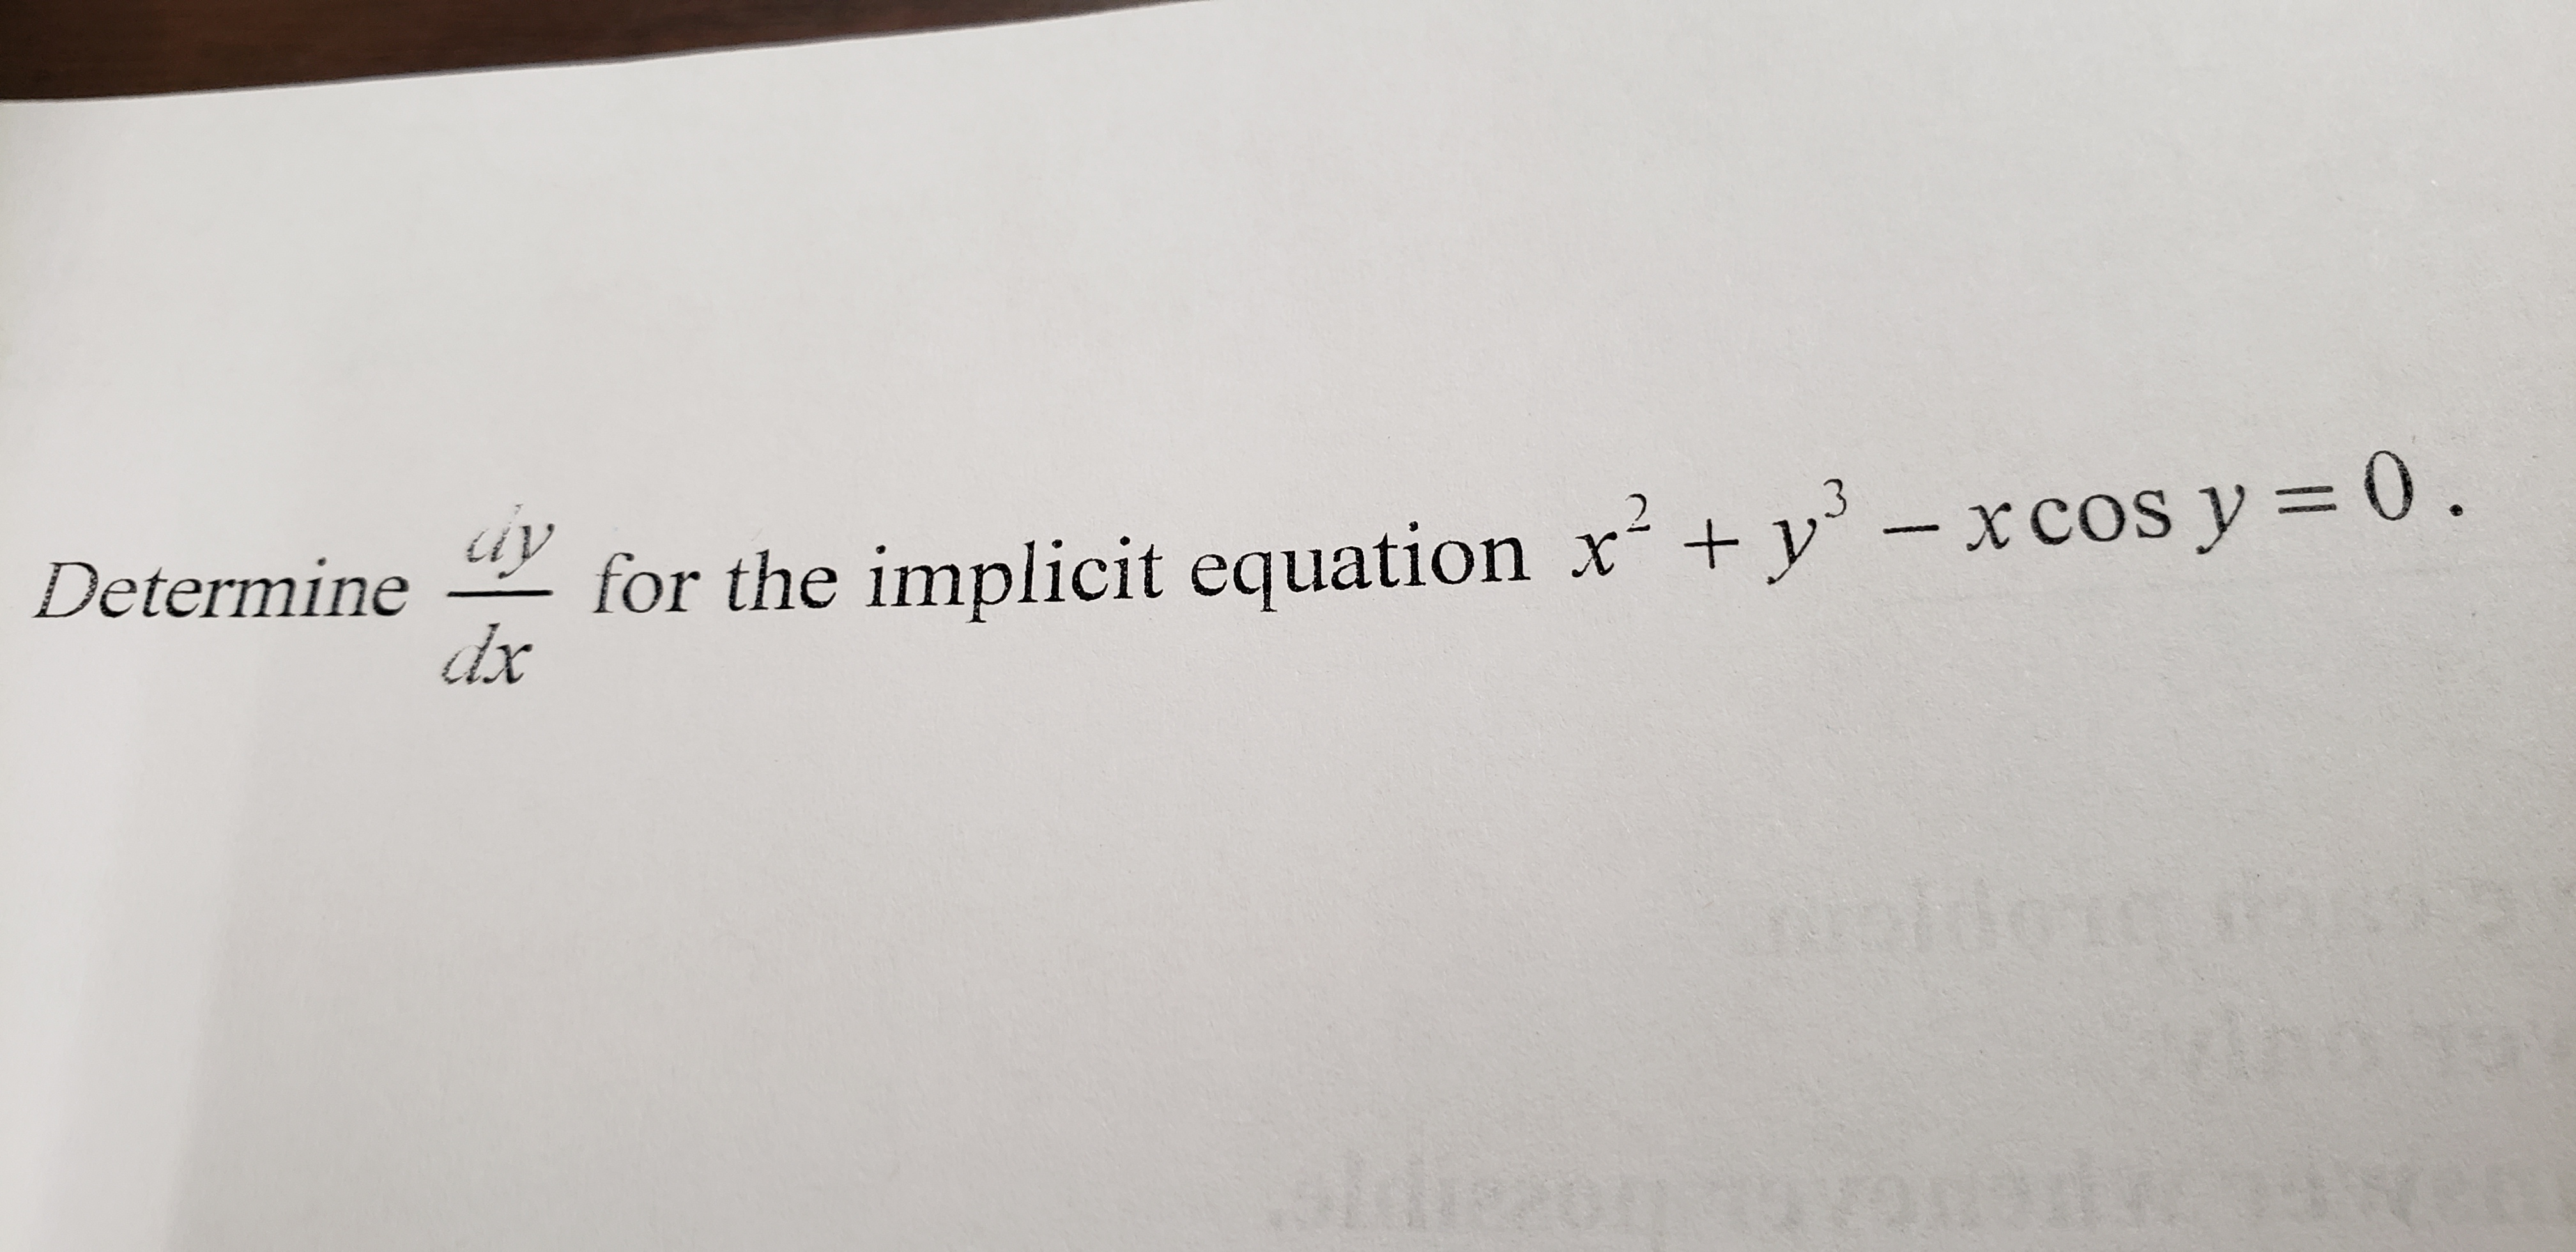 0 Determine-v for the implicit equation x2 + Уз-x cos y dx